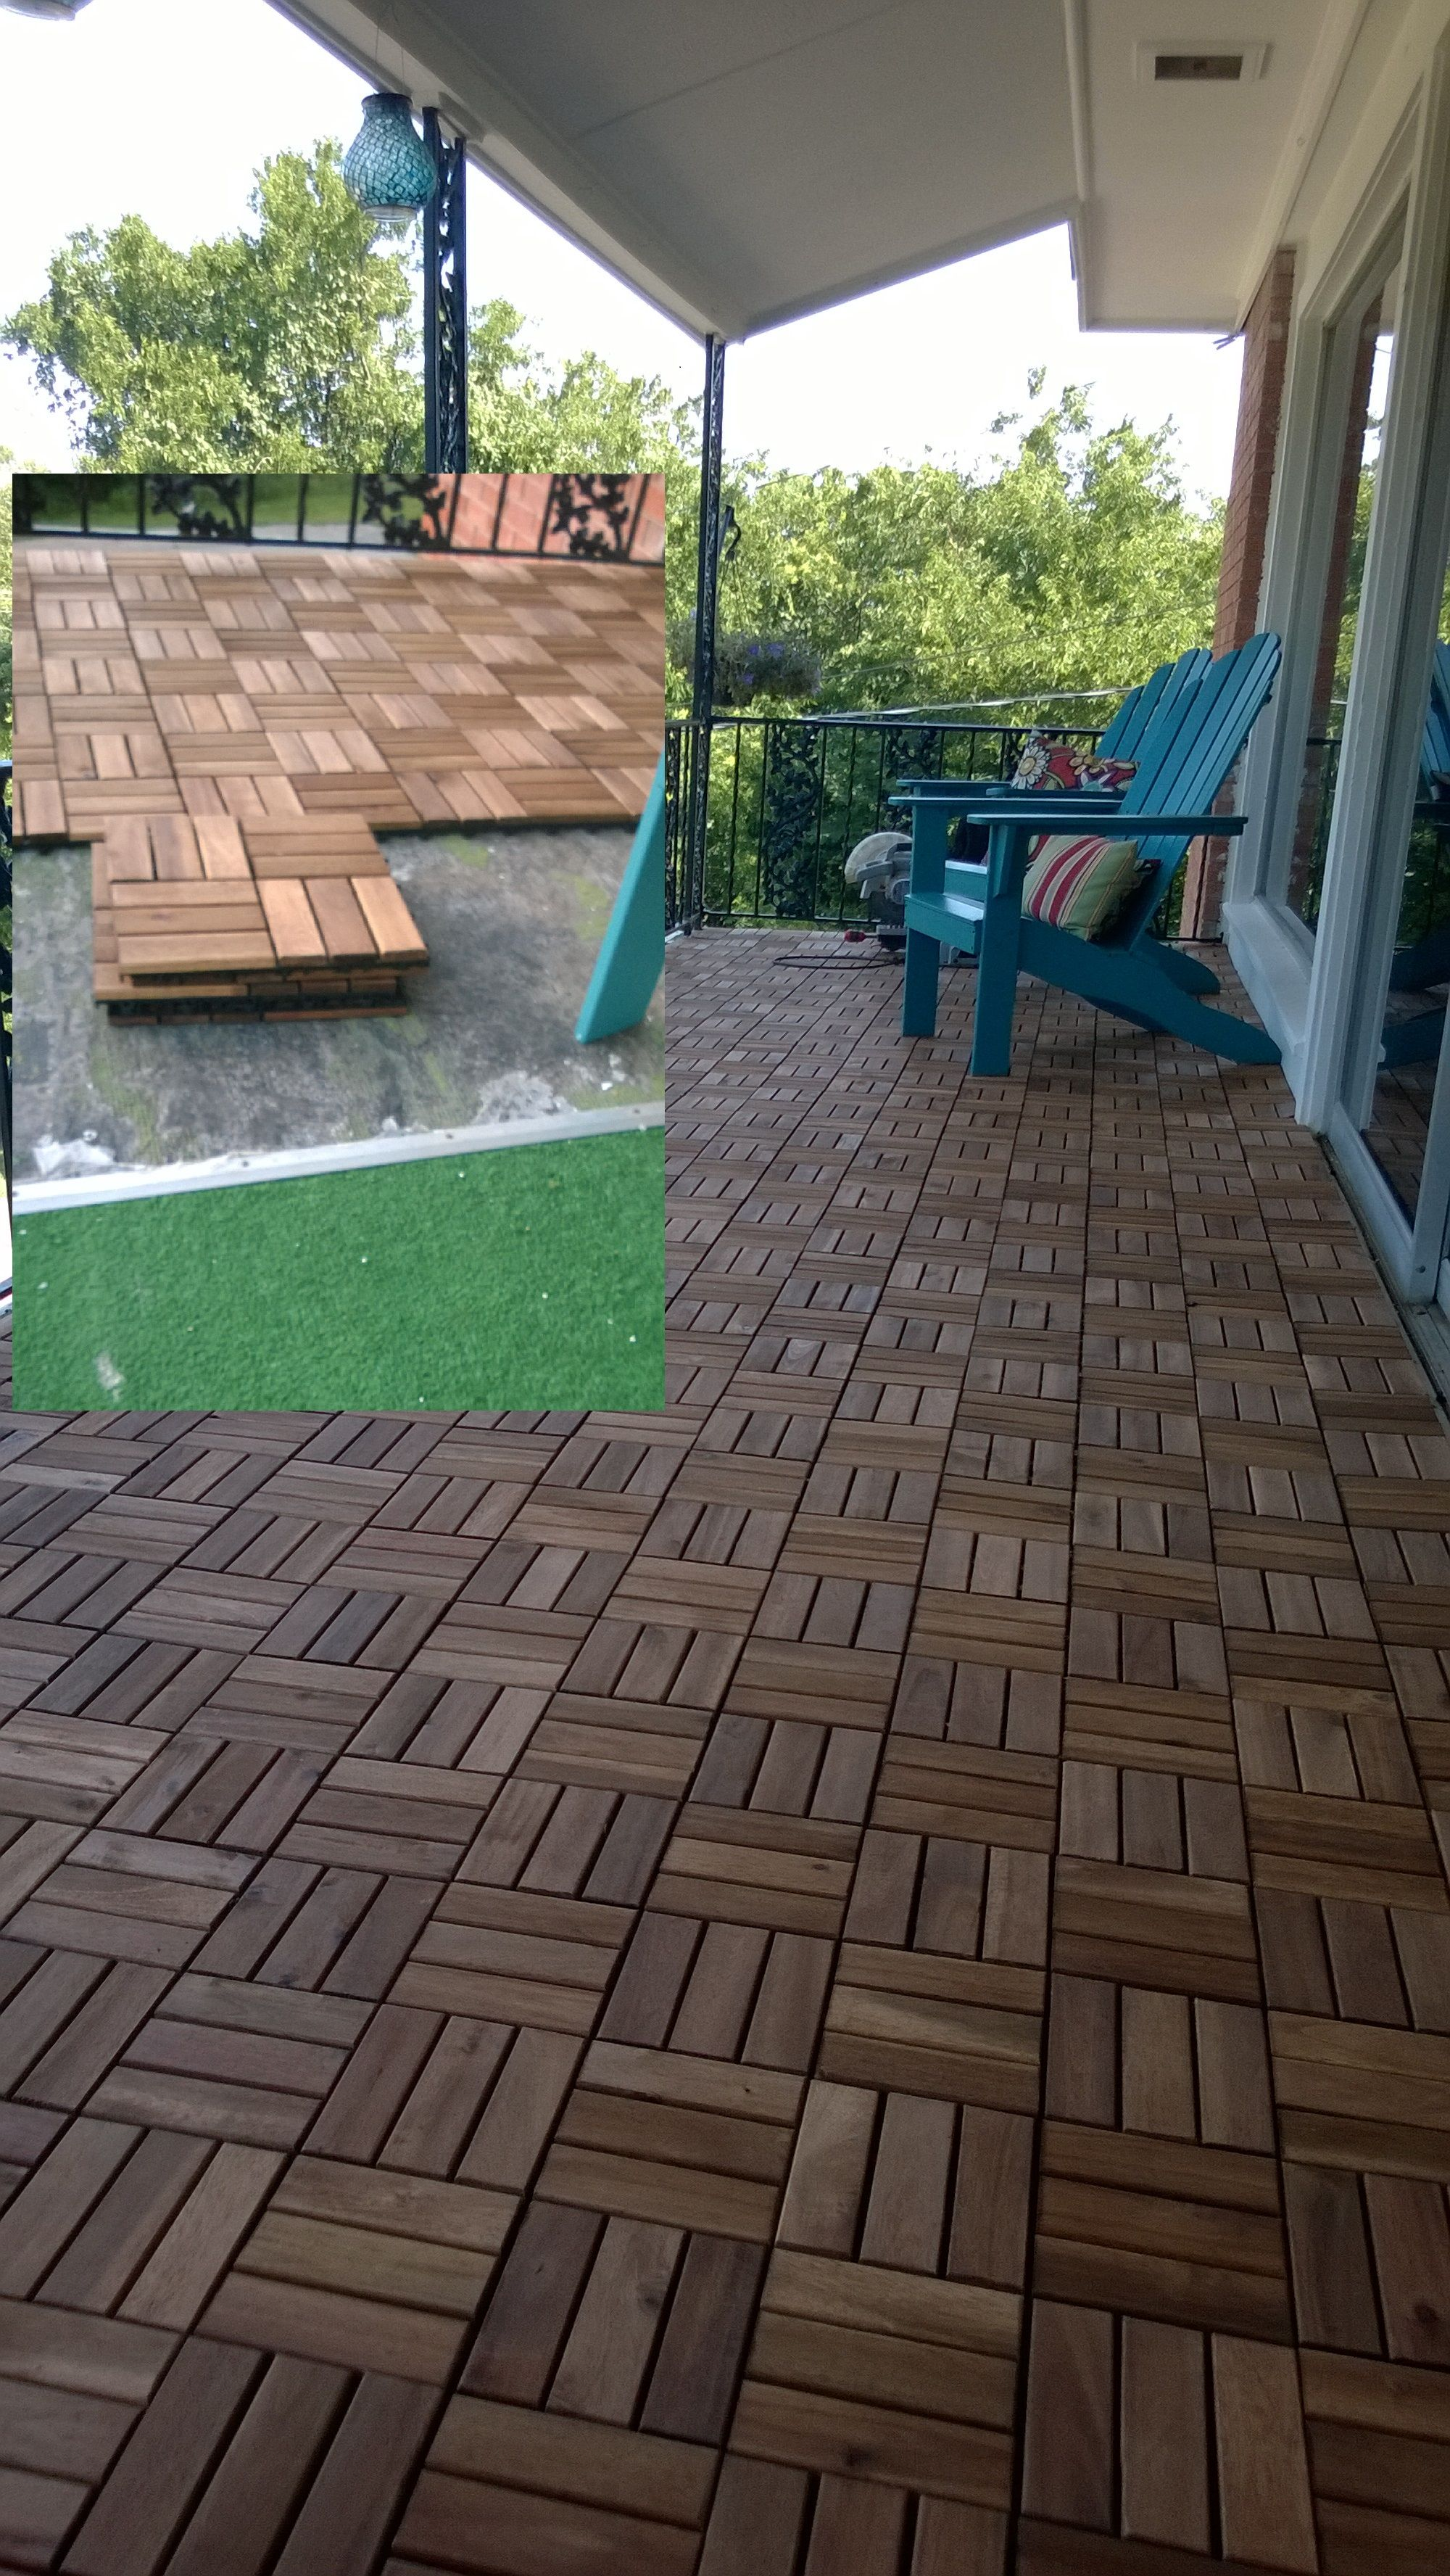 Covered The Many Layers Of Astroturf With Ikea Acacia Deck Tiles